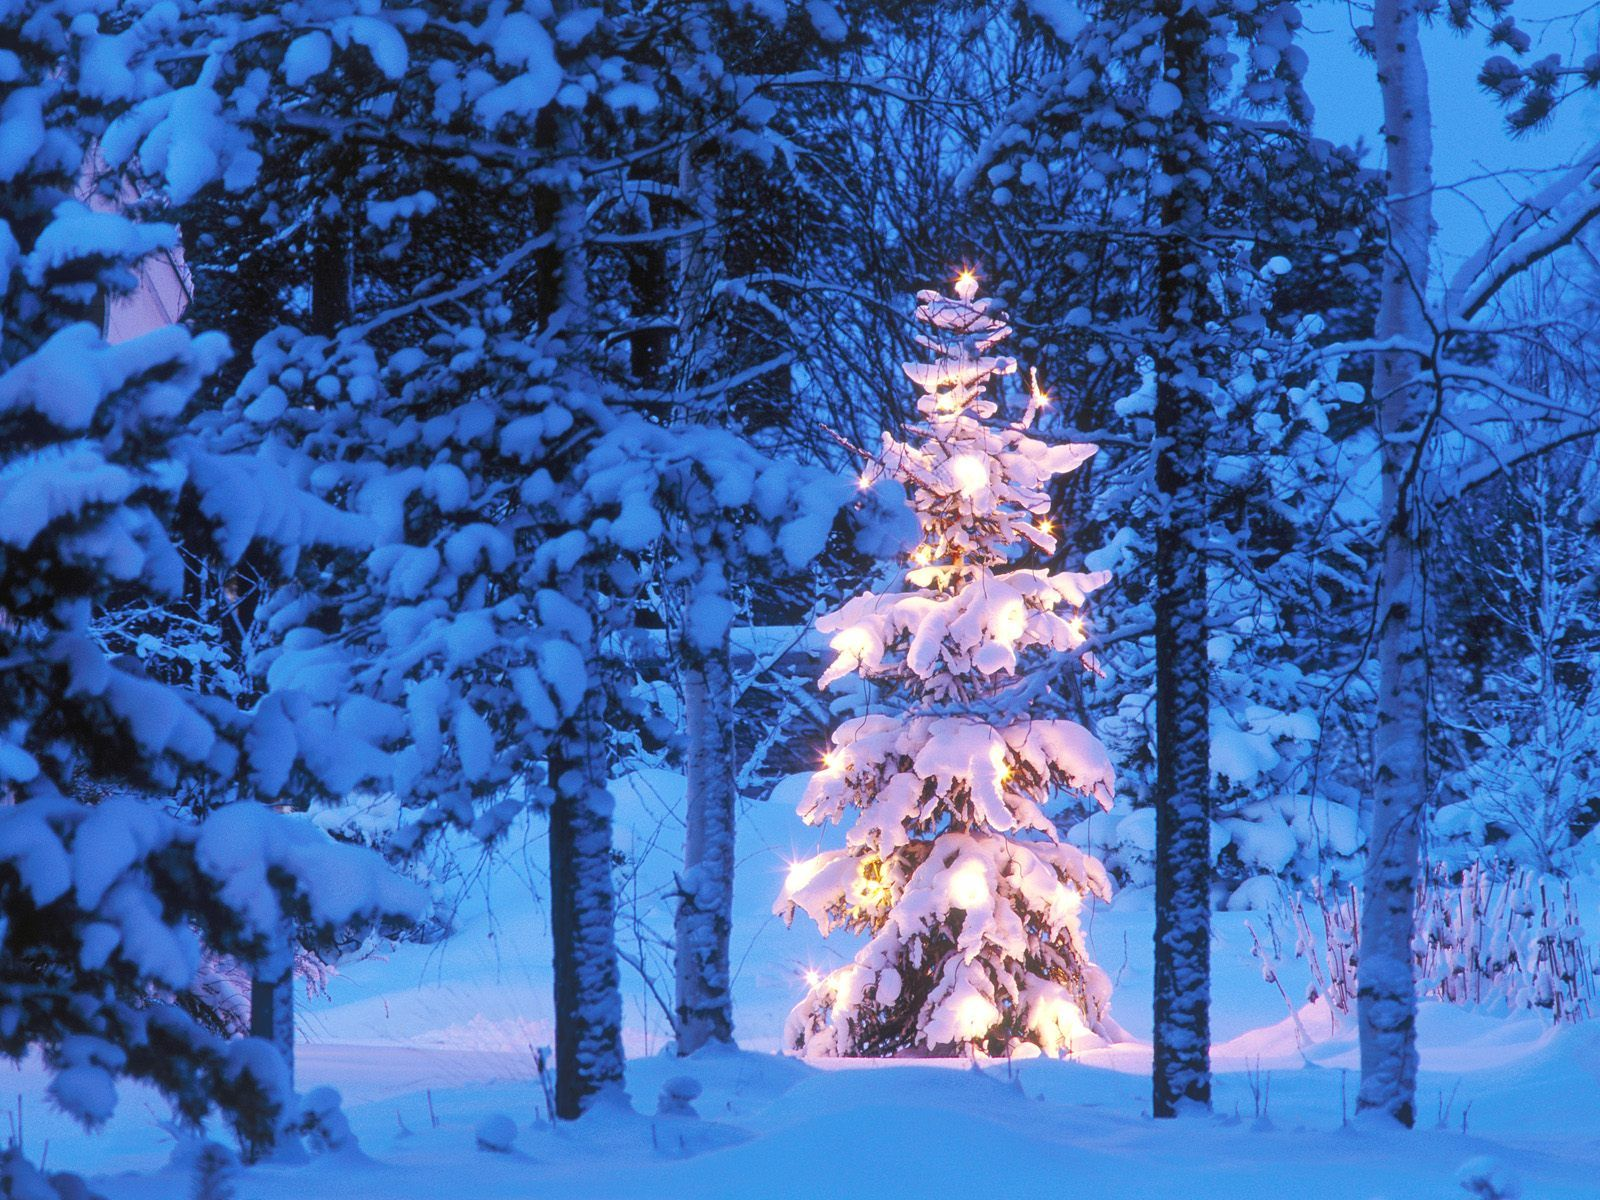 Christmas nature scenes wallpapers 9 christmas nature scenes christmas nature scenes wallpapers 9 voltagebd Image collections